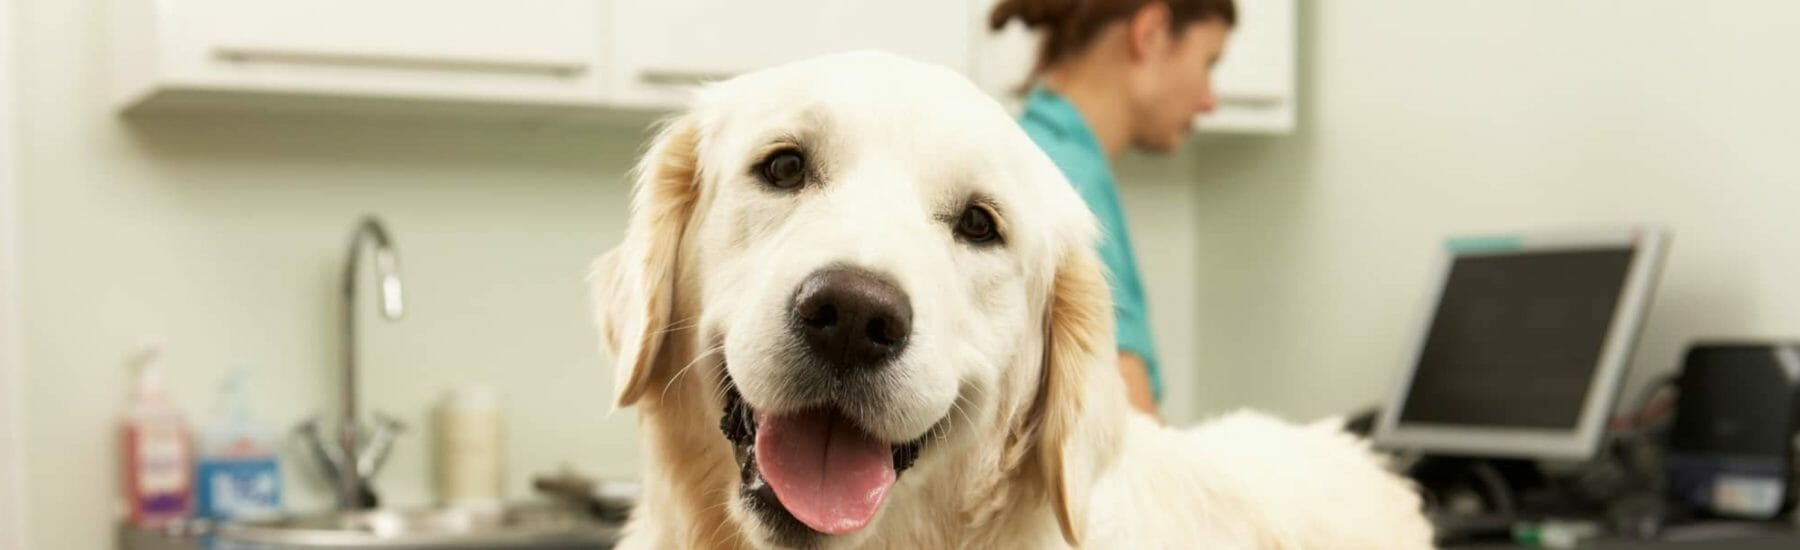 White dog at the veterinary clinic looking at camera